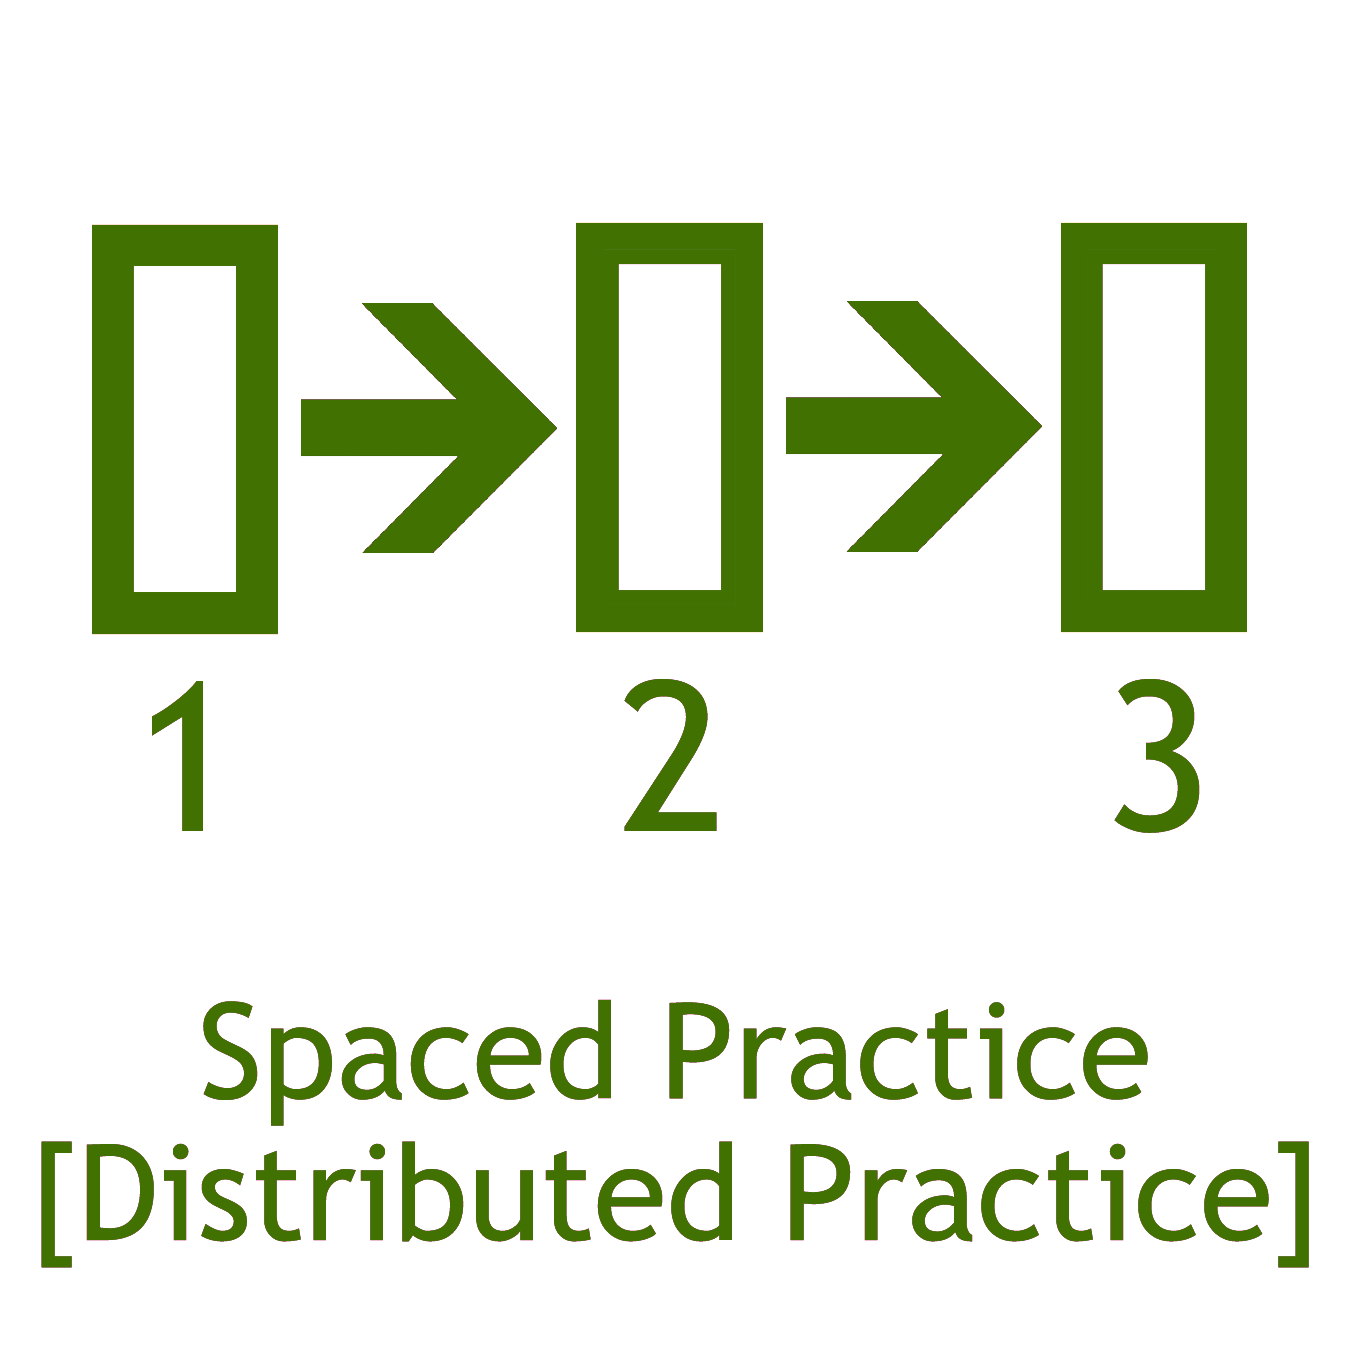 spaced-practice